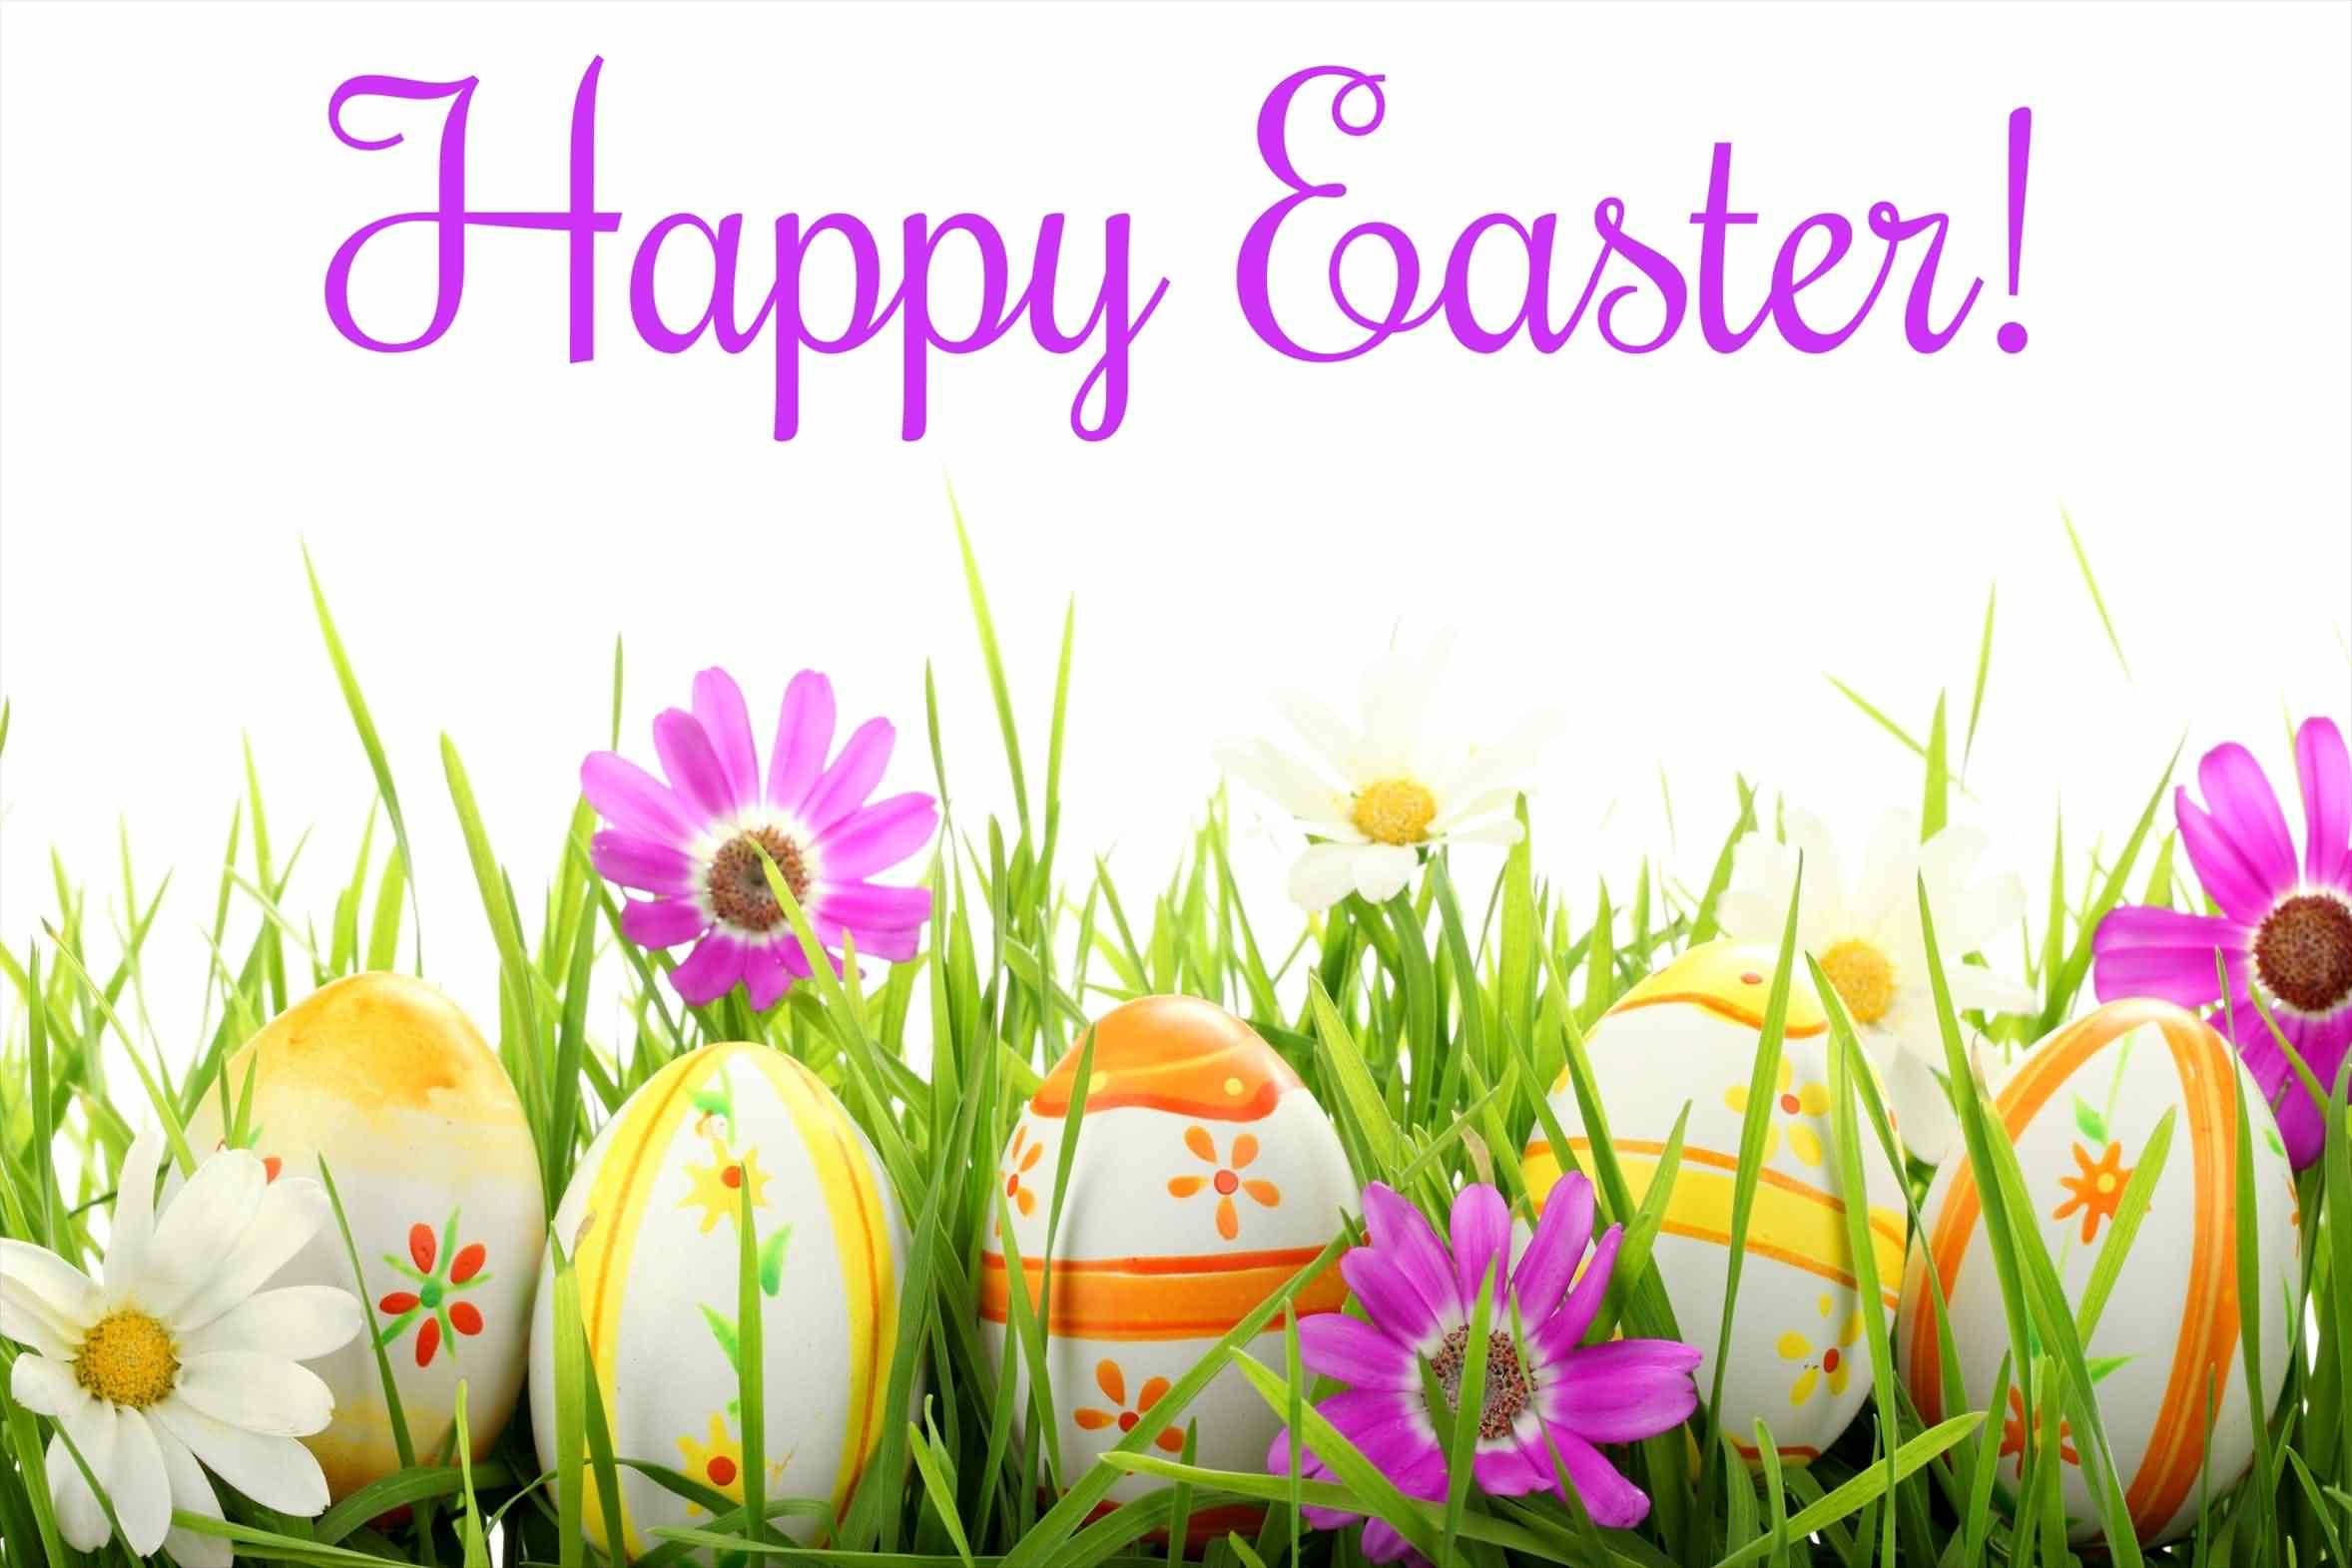 Happy Easter Greetings Images  44233